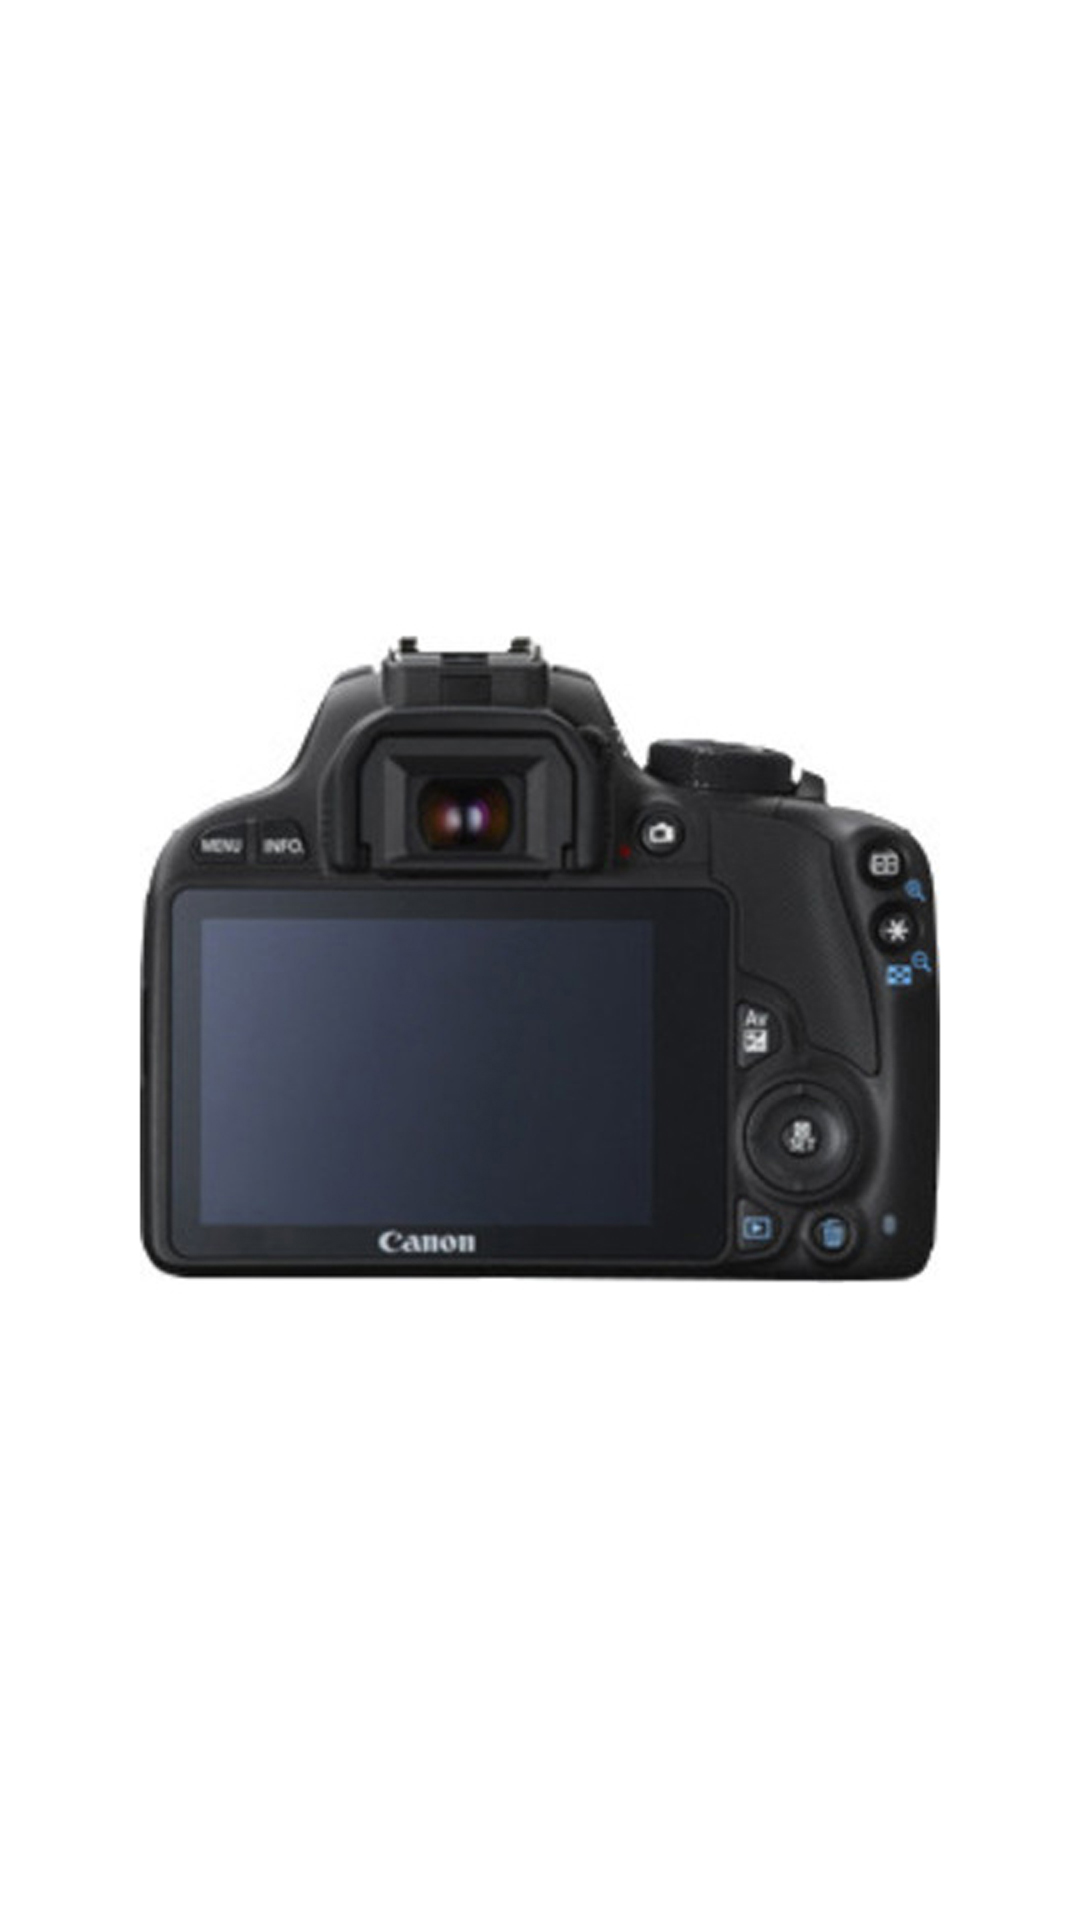 Canon EOS 100D Kit (EF S18-55 IS) DSLR